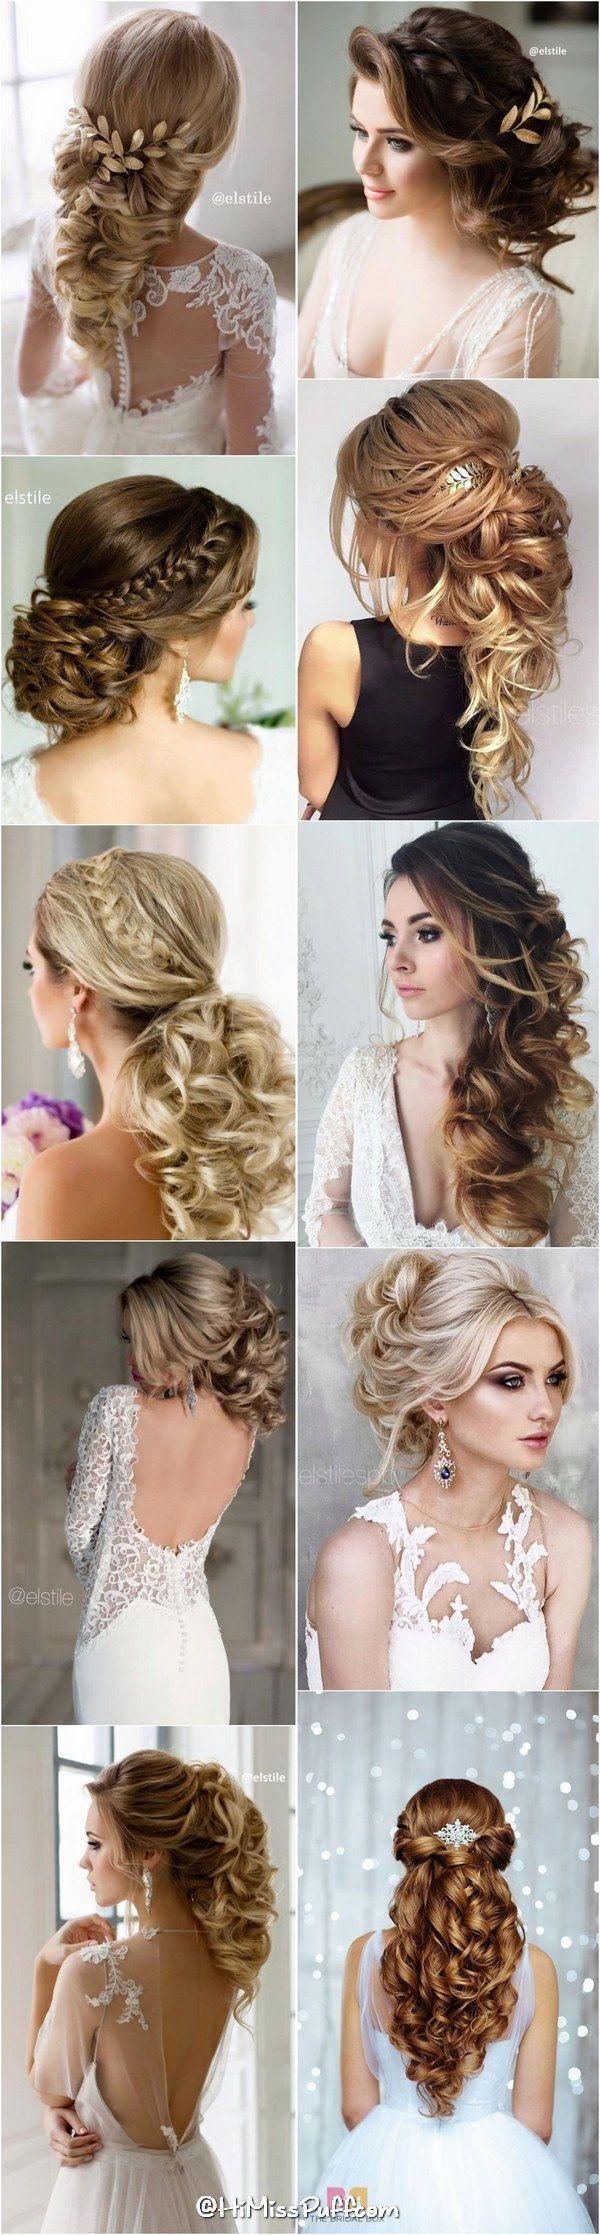 Hochzeit - 200 Bridal Wedding Hairstyles For Long Hair That Will Inspire